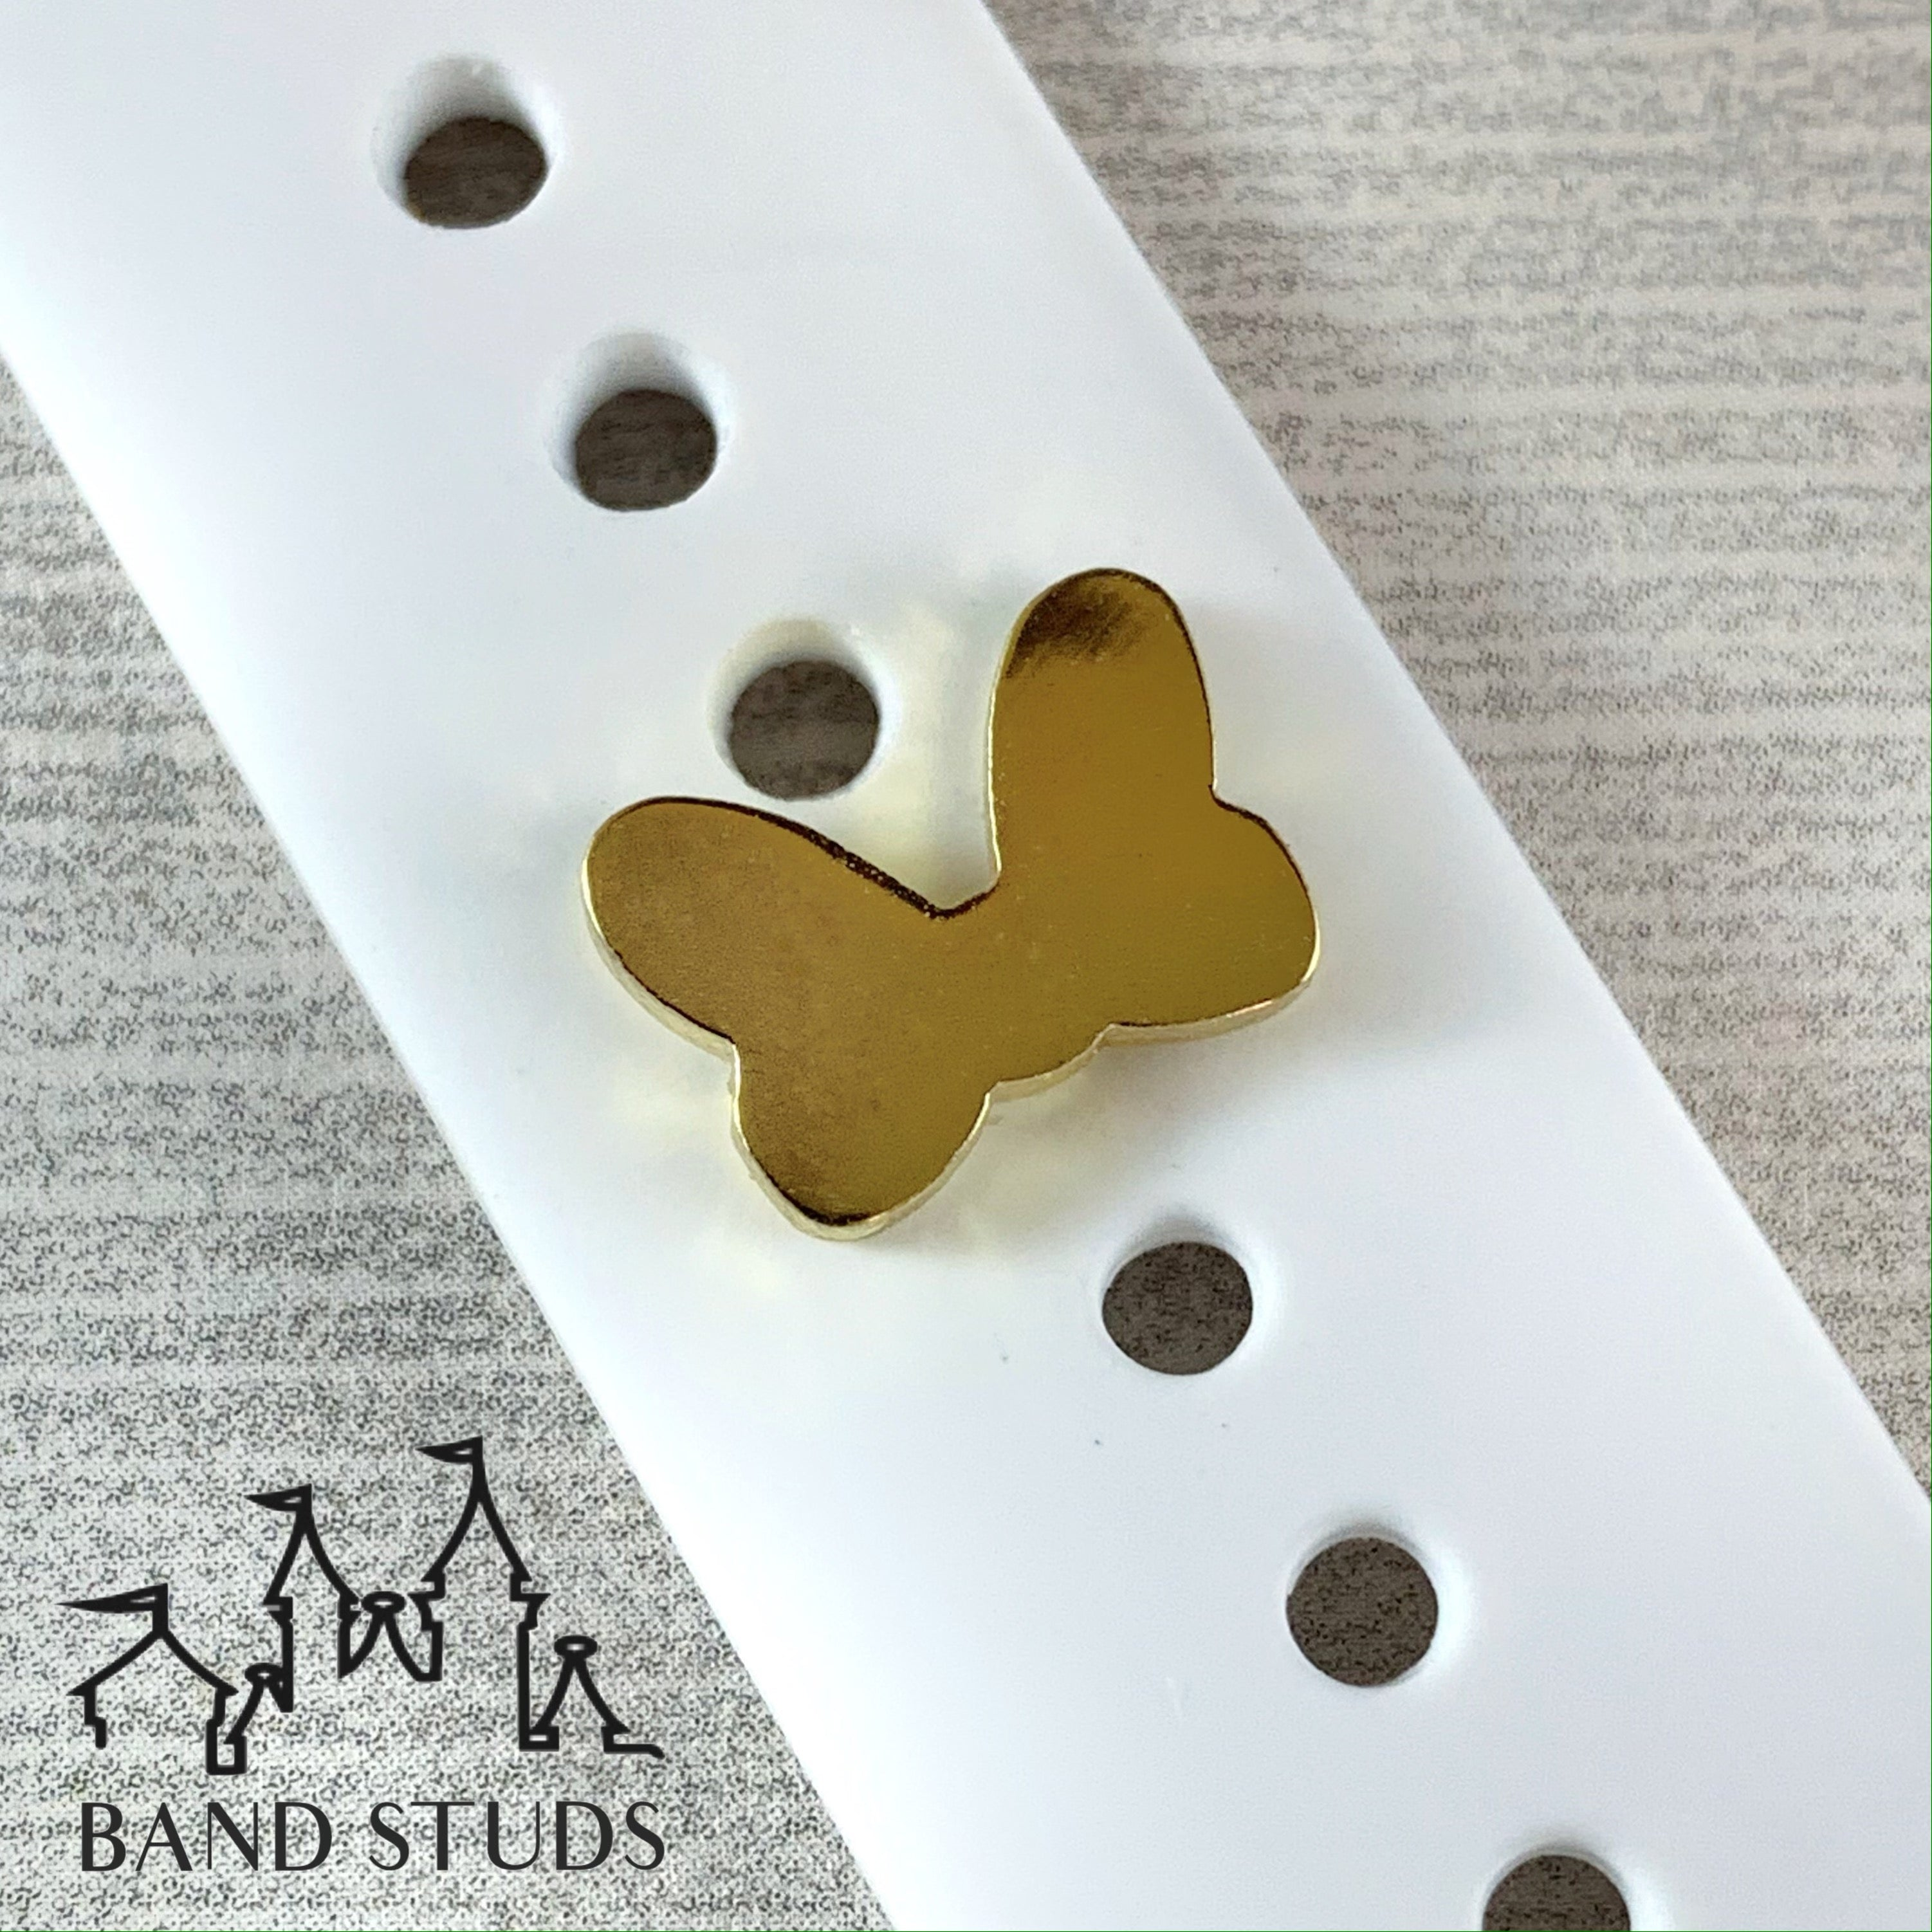 Band Stud® - It's all about the Bow - READY TO SHIP